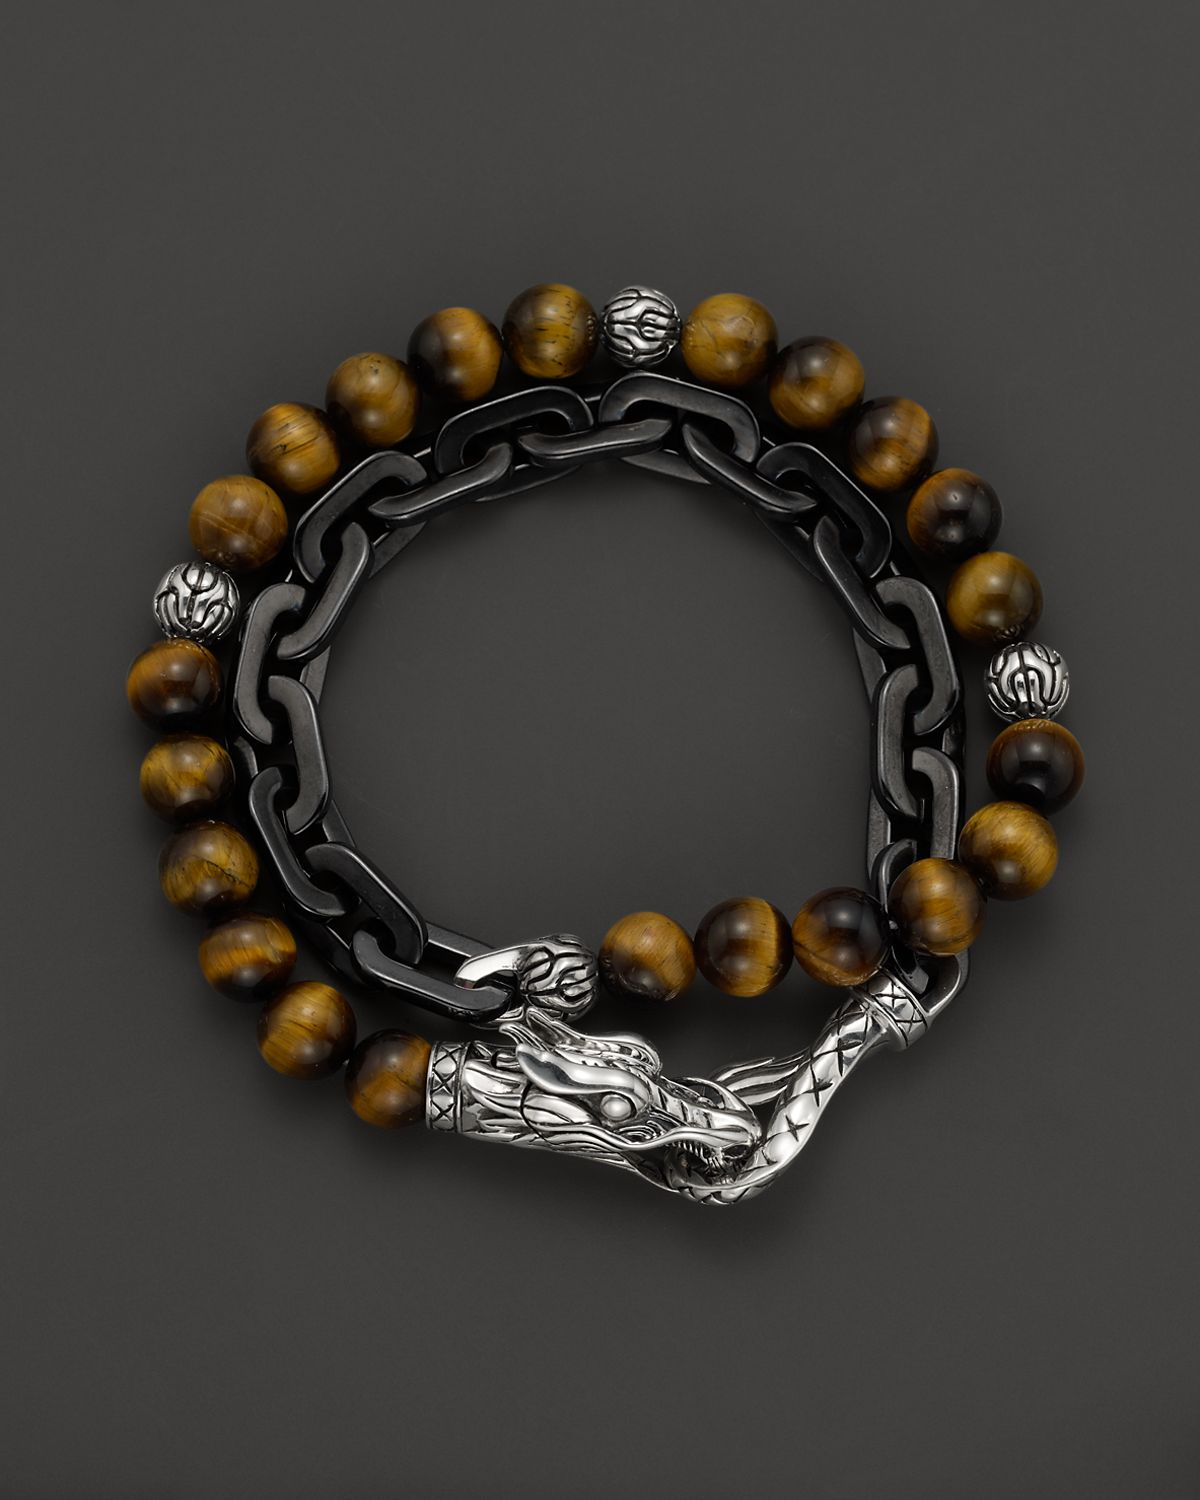 John Hardy Men S Naga Double Wrap Link Bracelet With Tiger